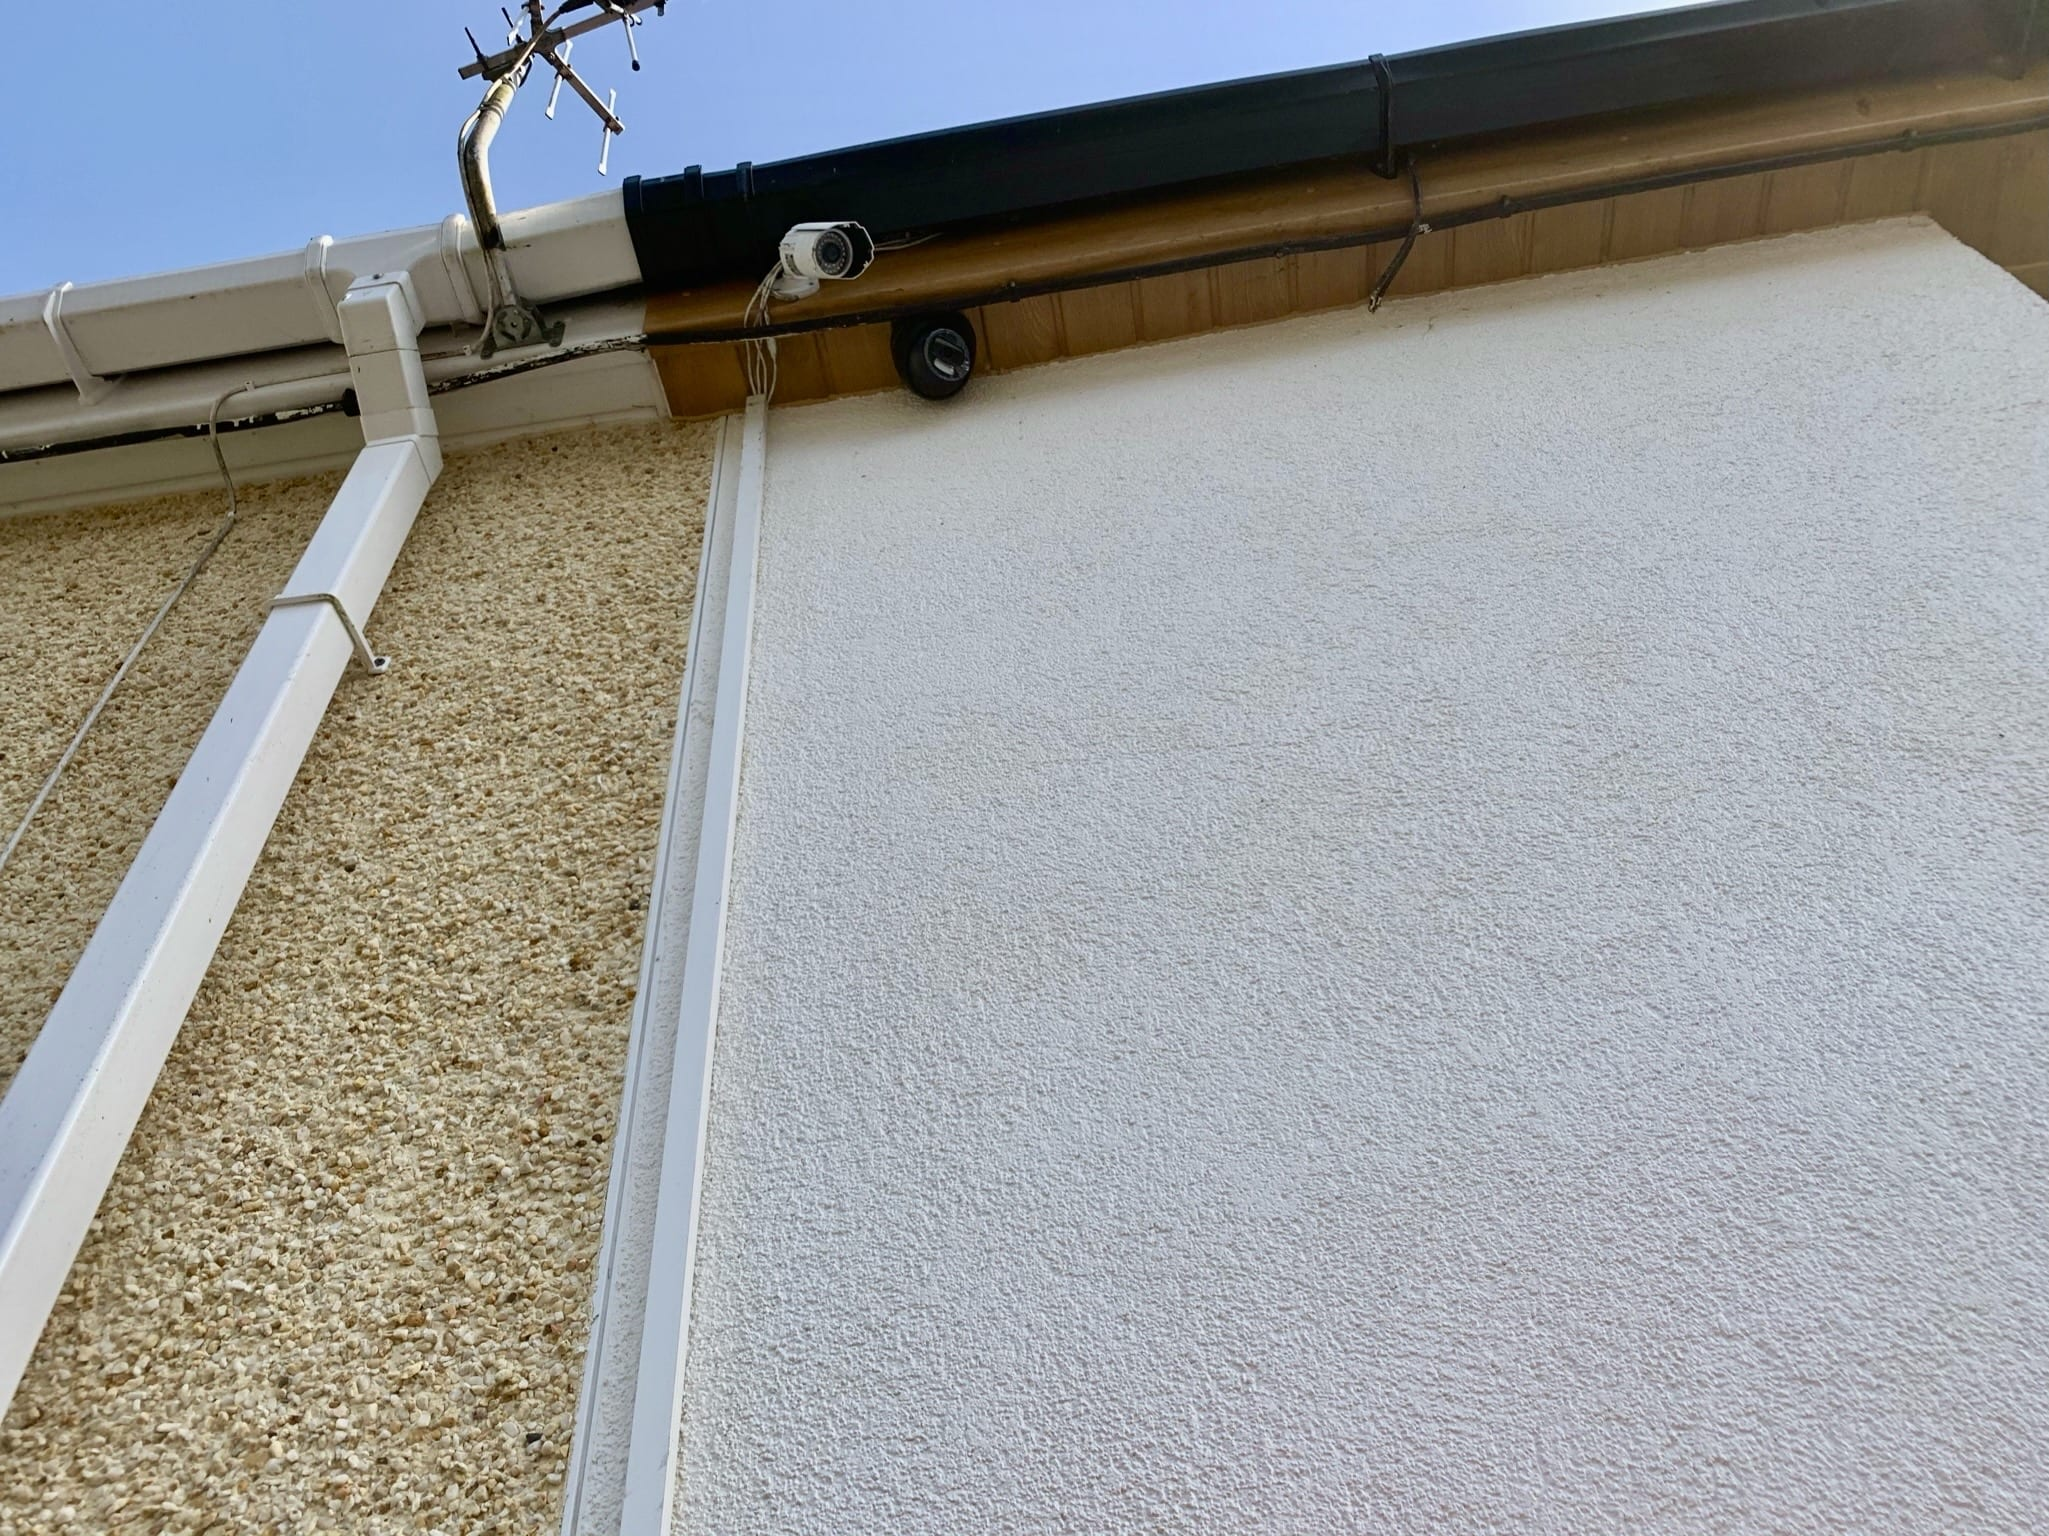 cctv camera on residential property